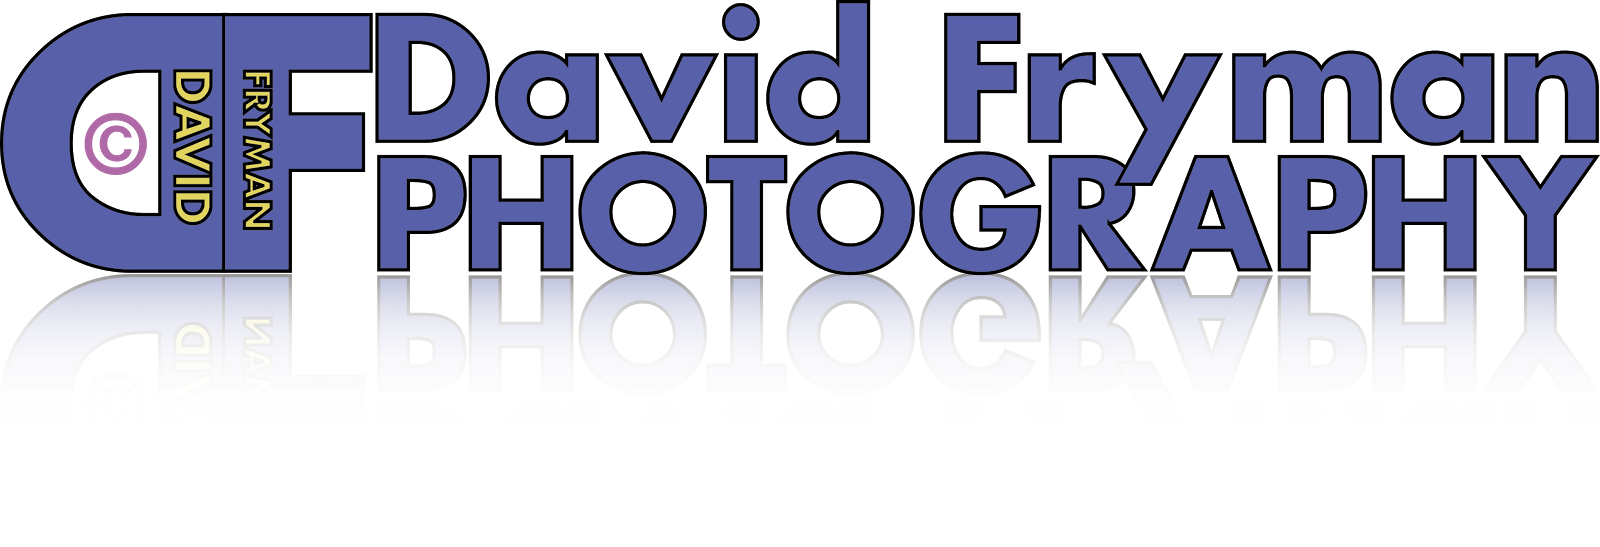 David Fryman Photography